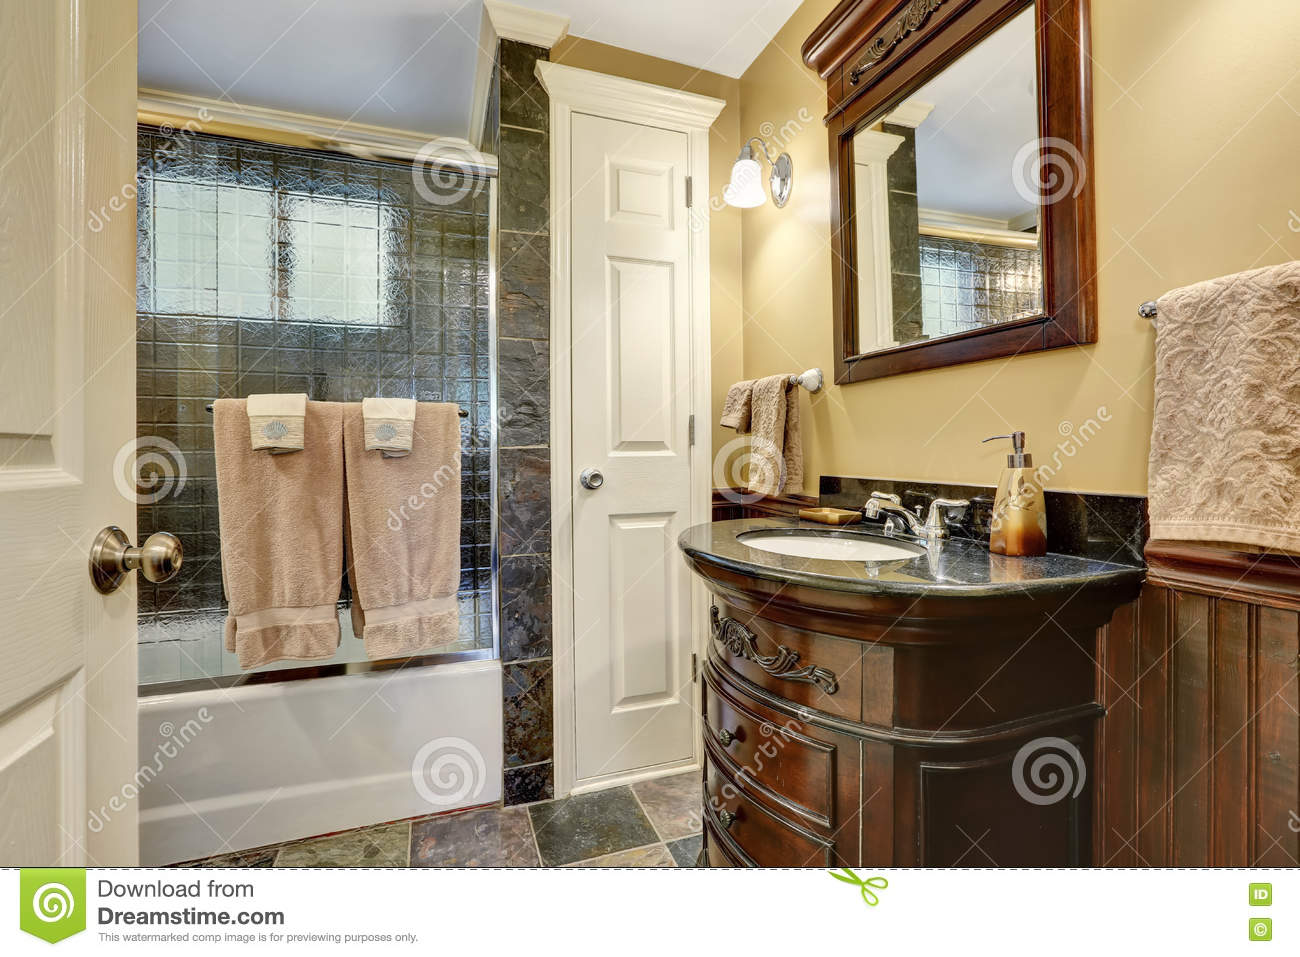 vintage bathroom interior with natural stone tile trim stock photo